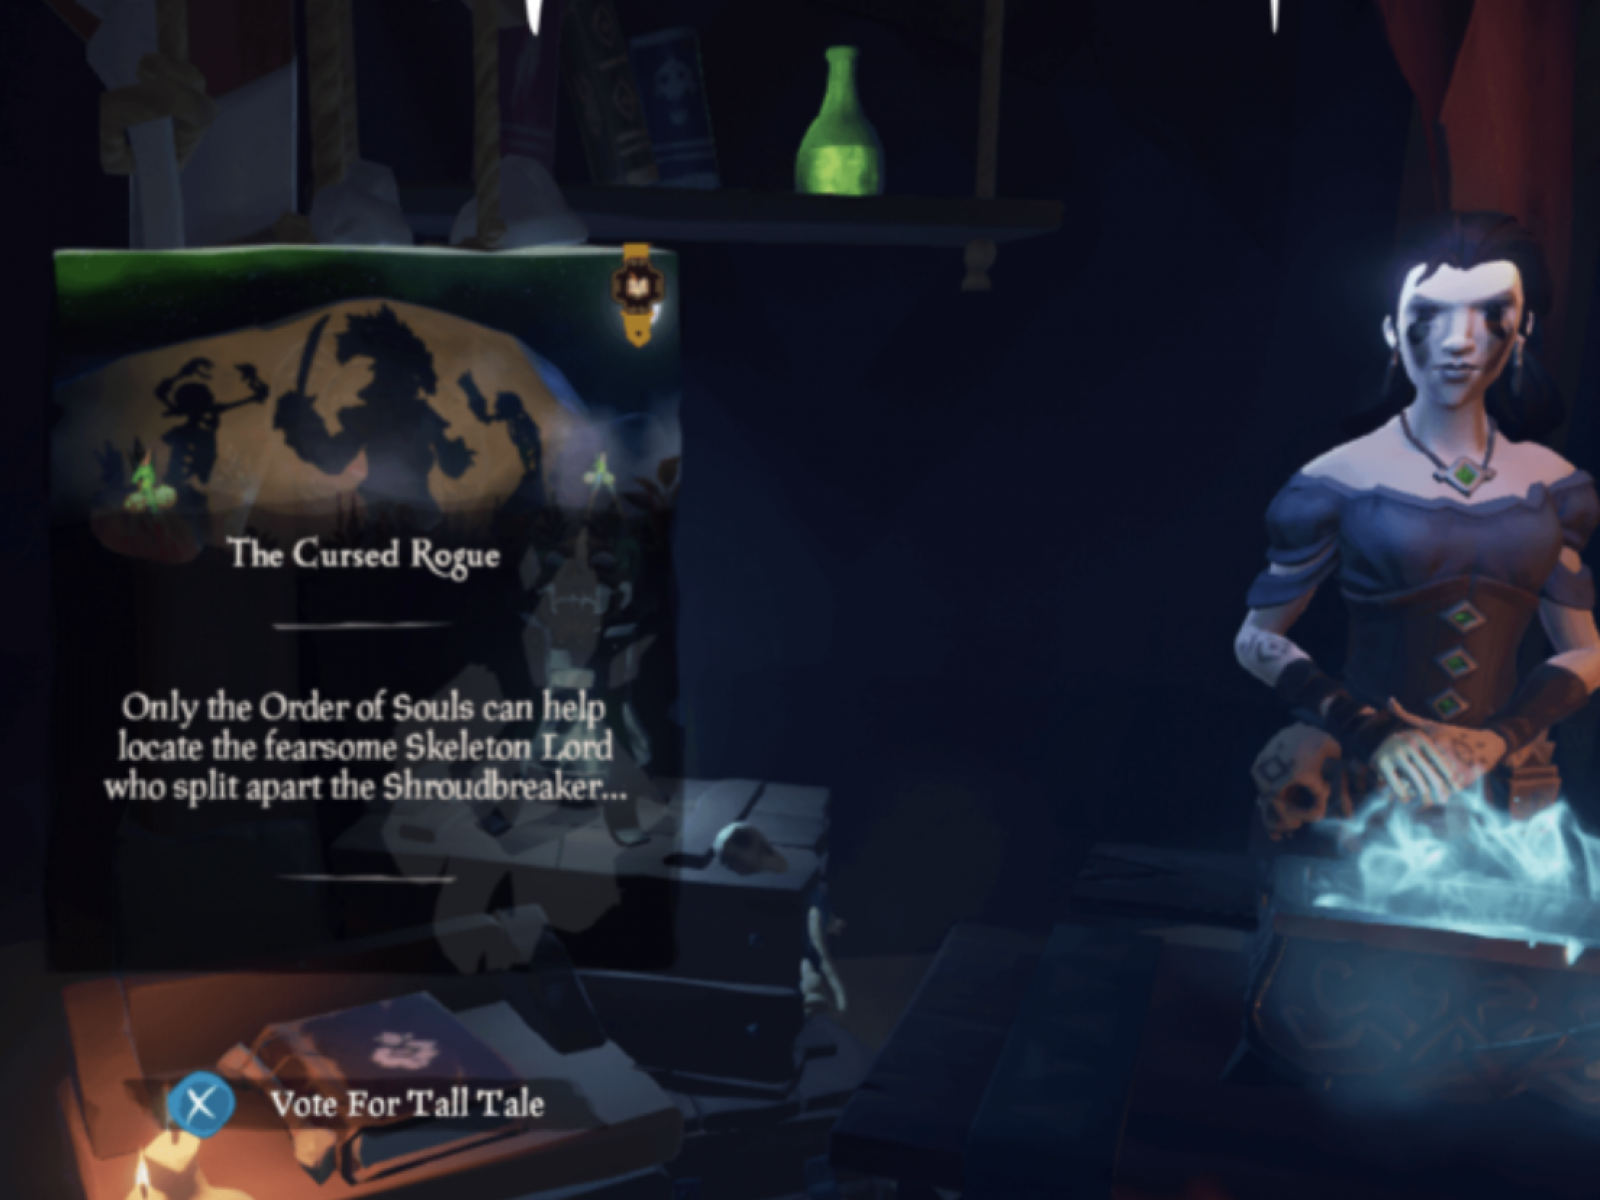 Sea of Thieves' Cursed Rogue Tall Tale Guide: How to Find